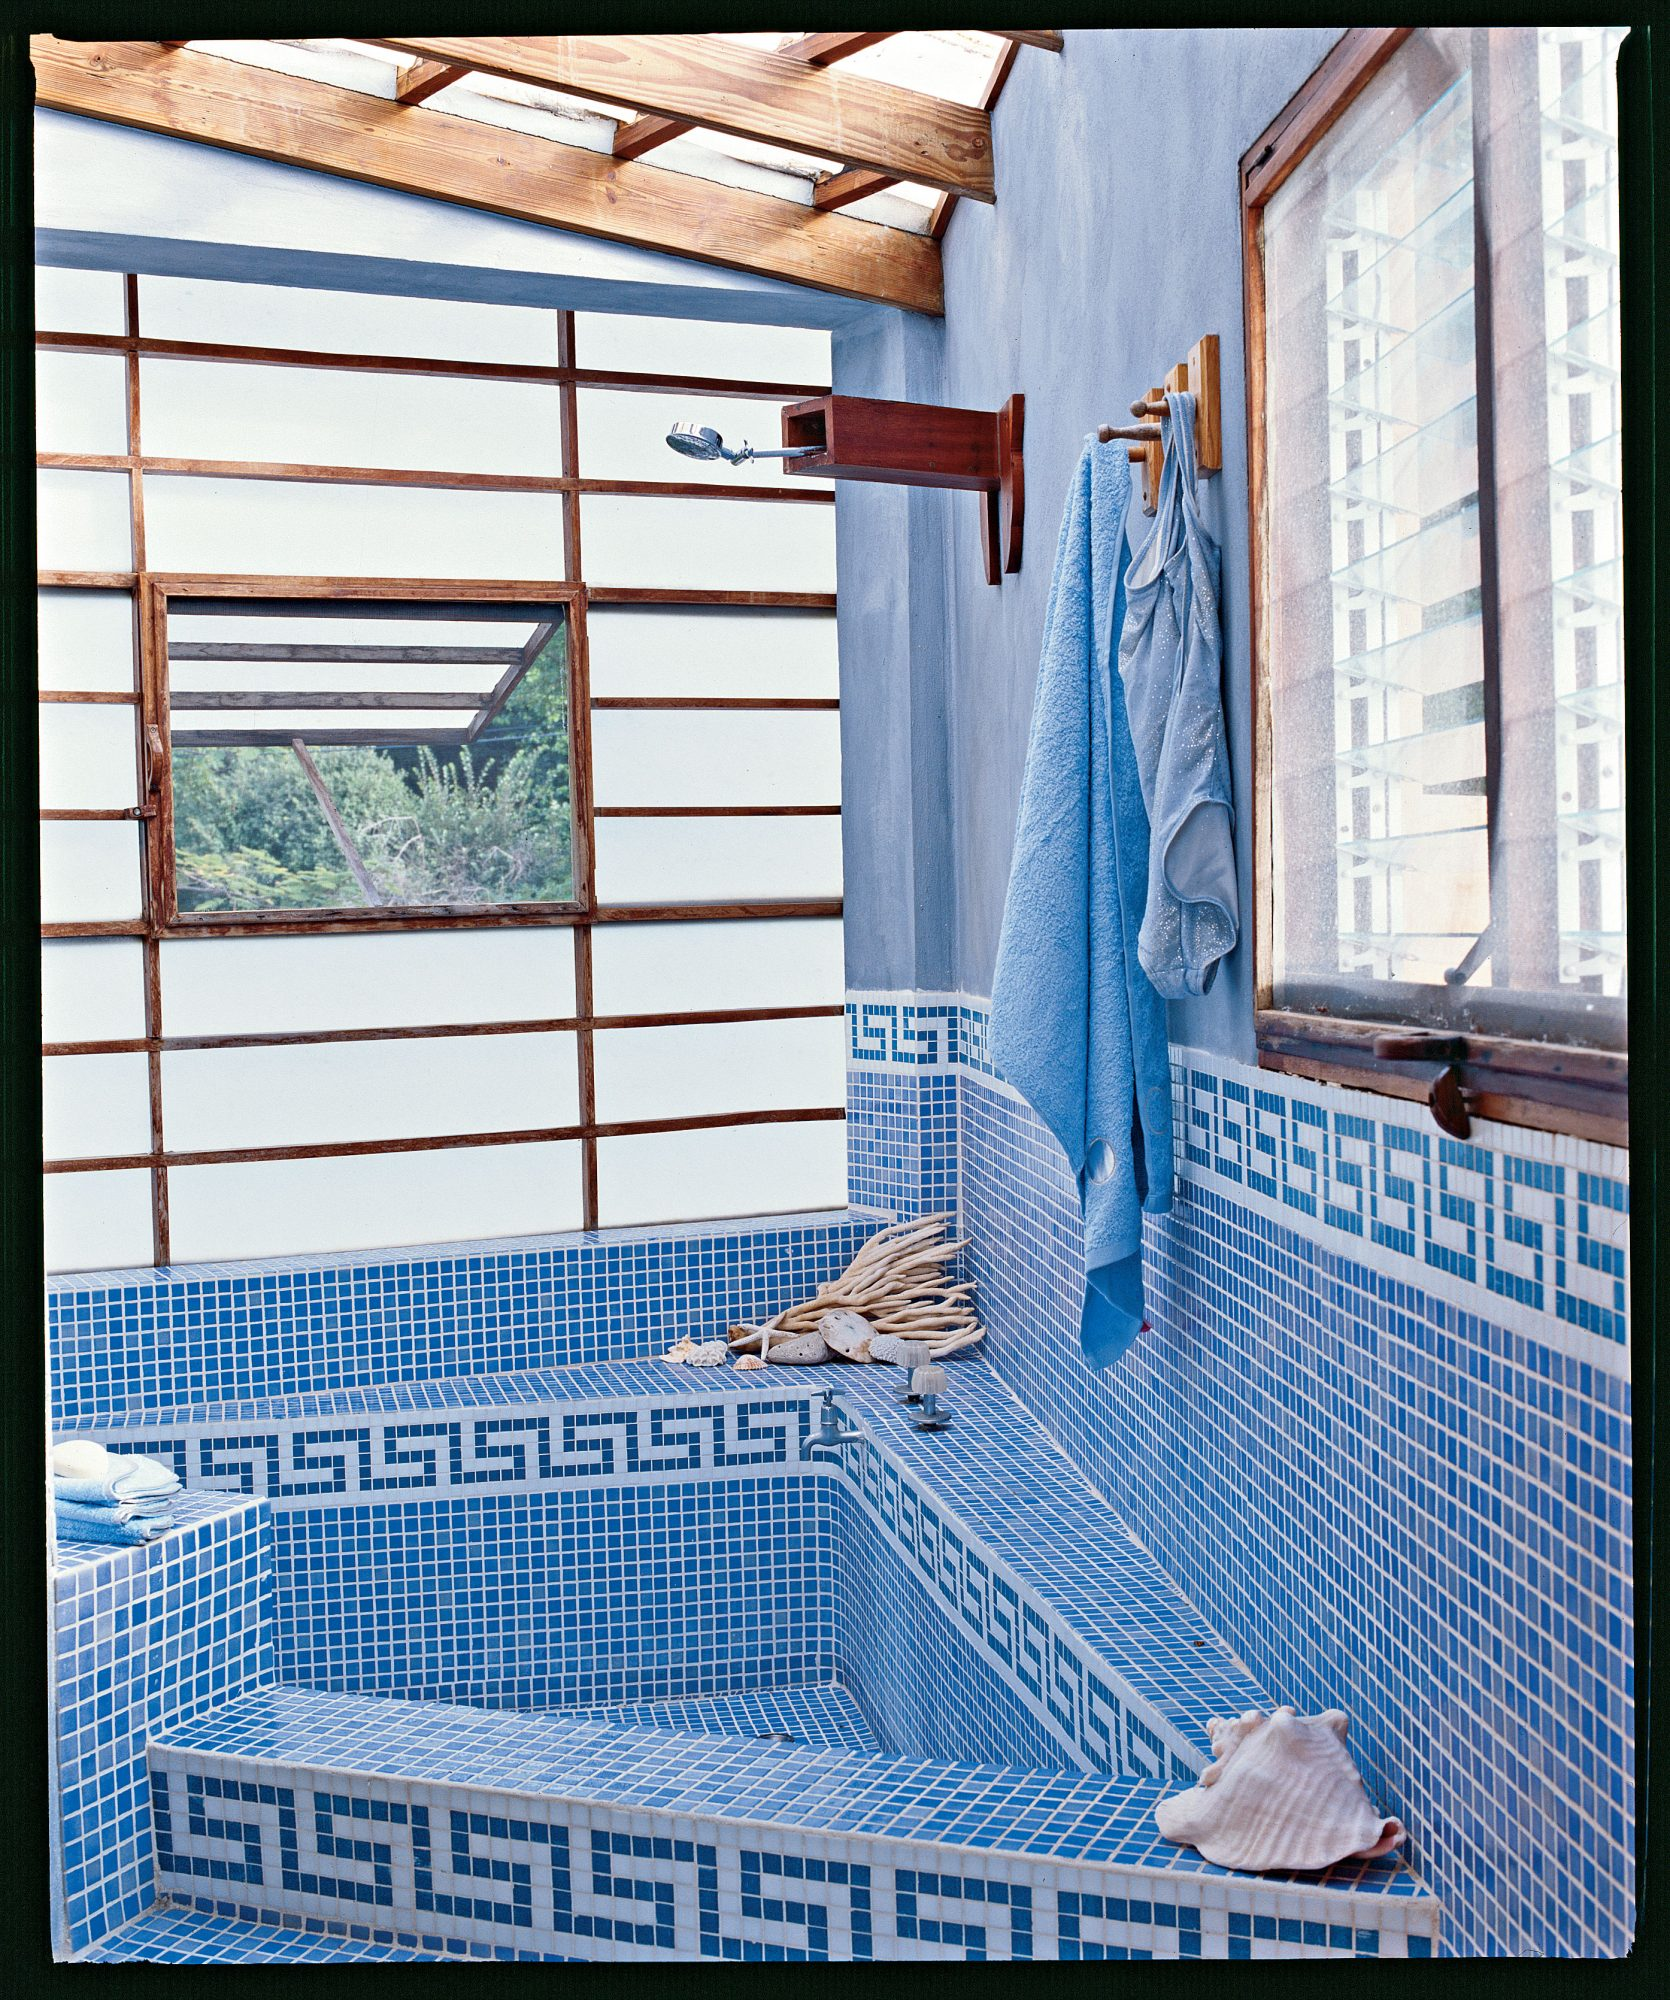 geometric patterns of blue and white tile border the edge of a sunken bathtub covered in small tiles